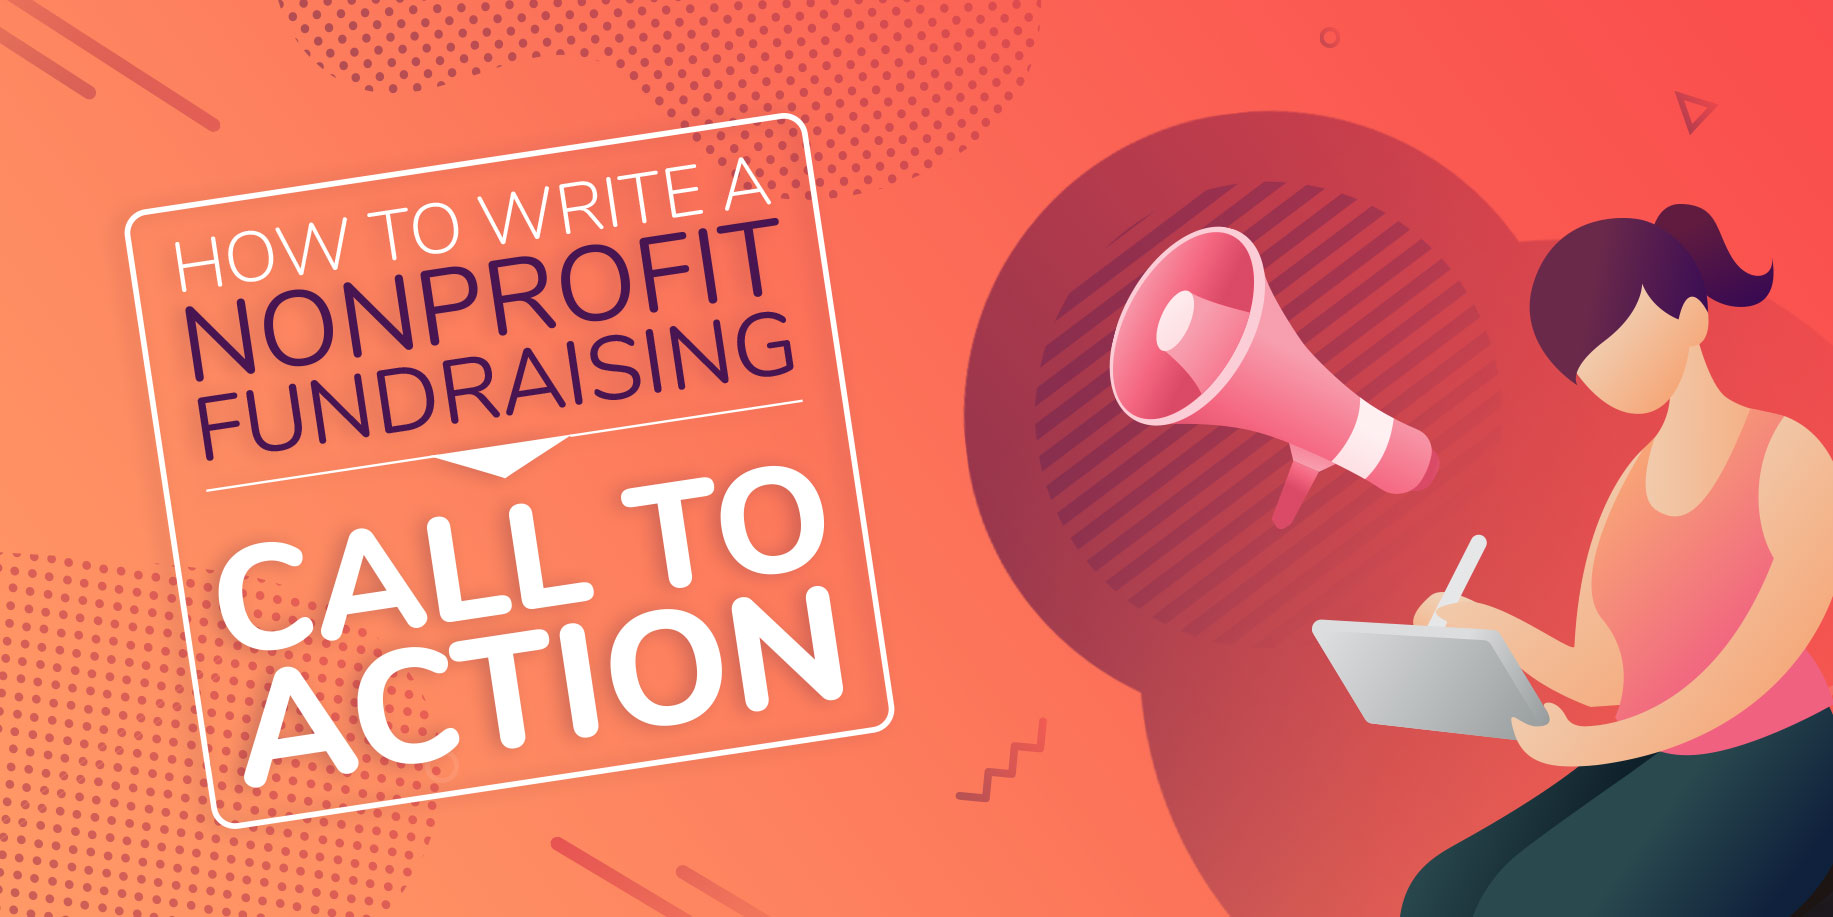 How to Write a Nonprofit Fundraising Call to Action